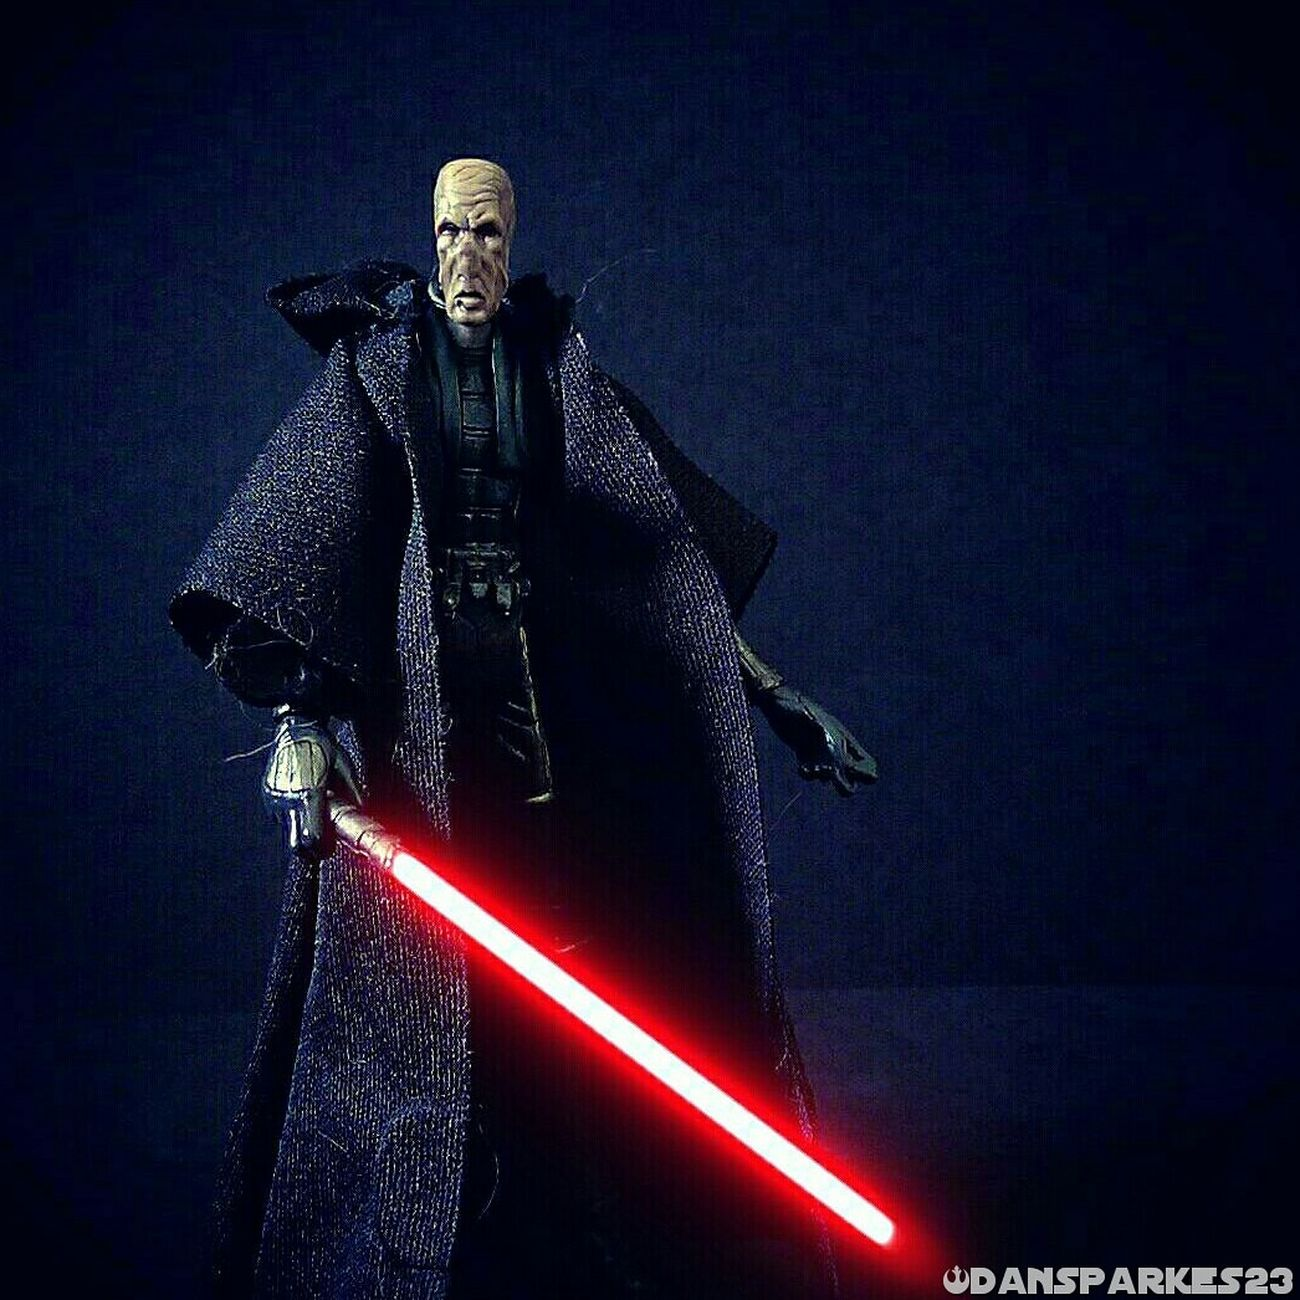 DarthPlagueis Starwarsblackseries Starwarsfigures Starwarstoys Starwarstoypix Starwarstoyfigs Starwarstoyphotography Toyunion Toygroup_alliance